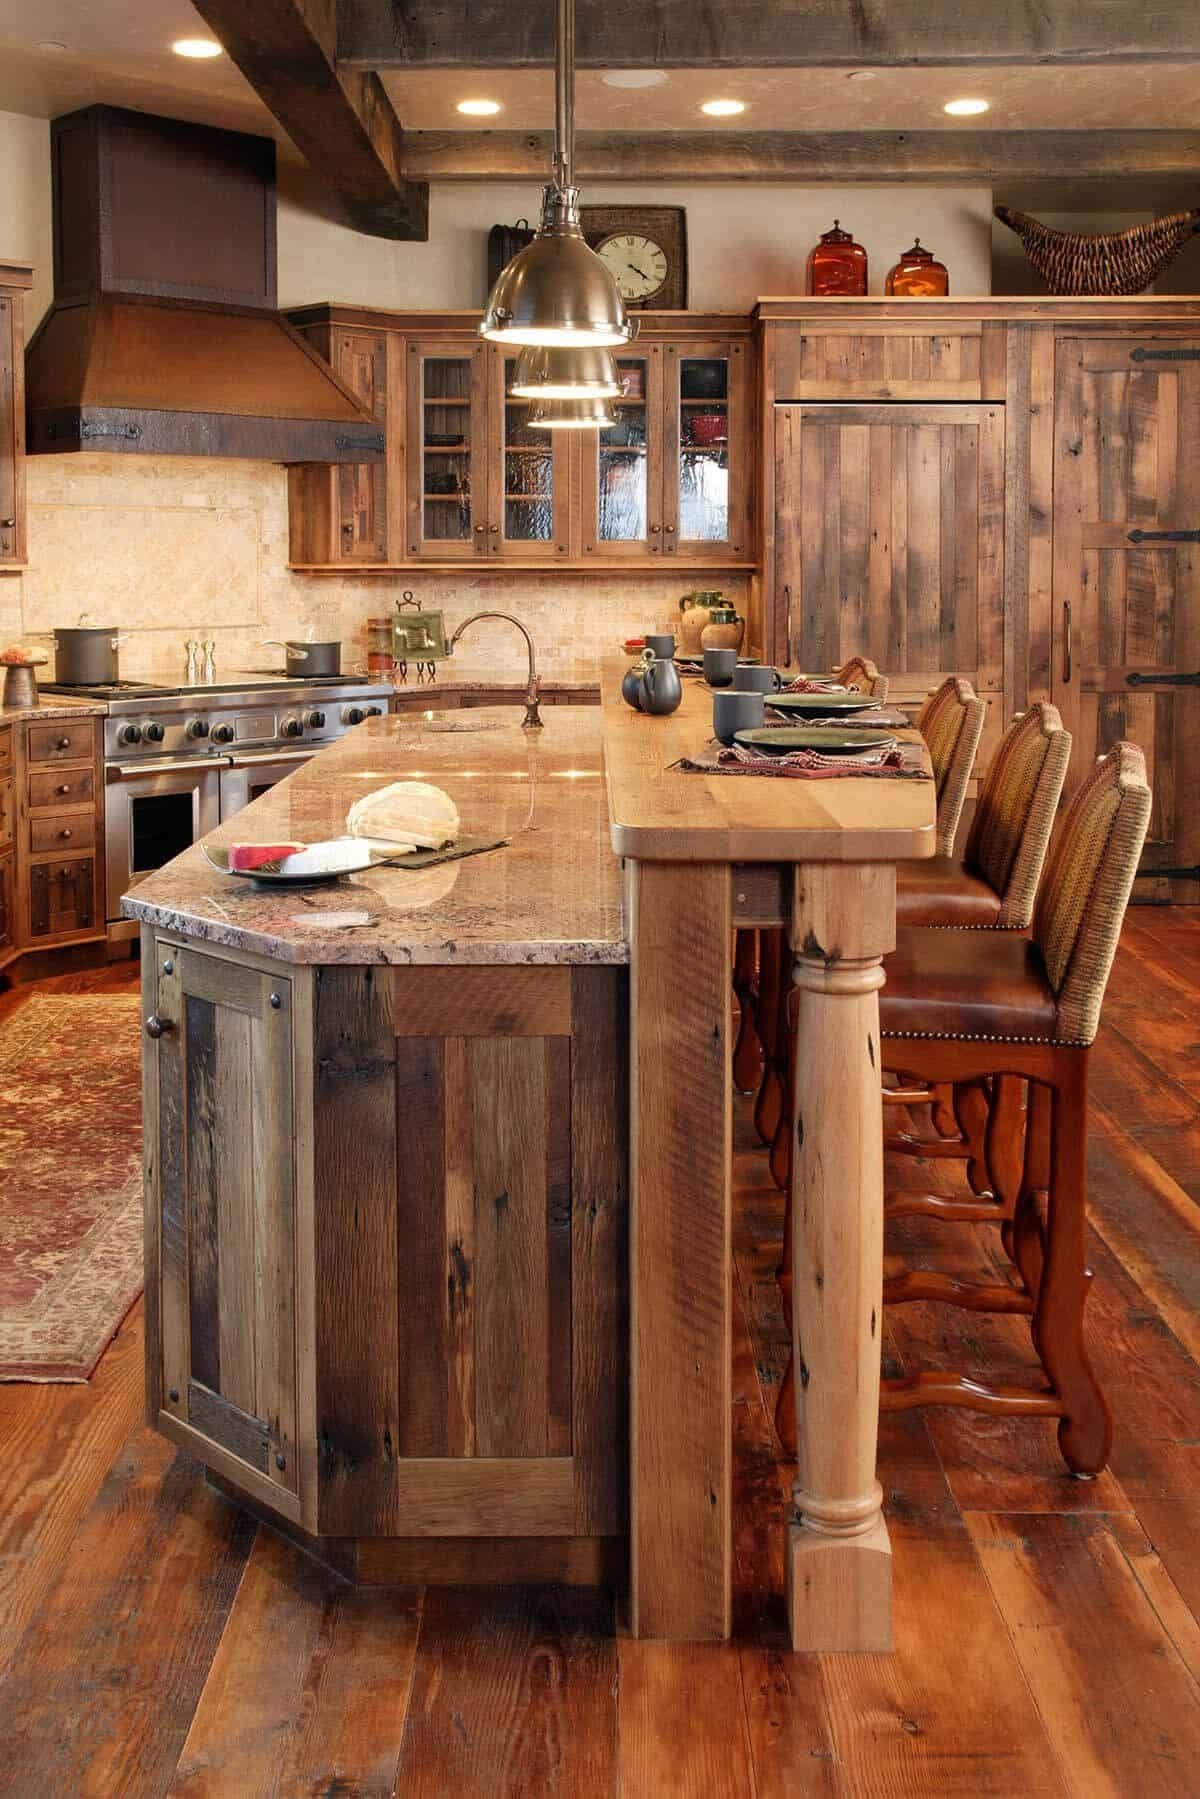 Rustic Cabinets In Luxurious Ski Lodge By Steamboatlocalbrokers Com Rustic Kitchen Island Rustic Kitchen Cabinets Diy Kitchen Island